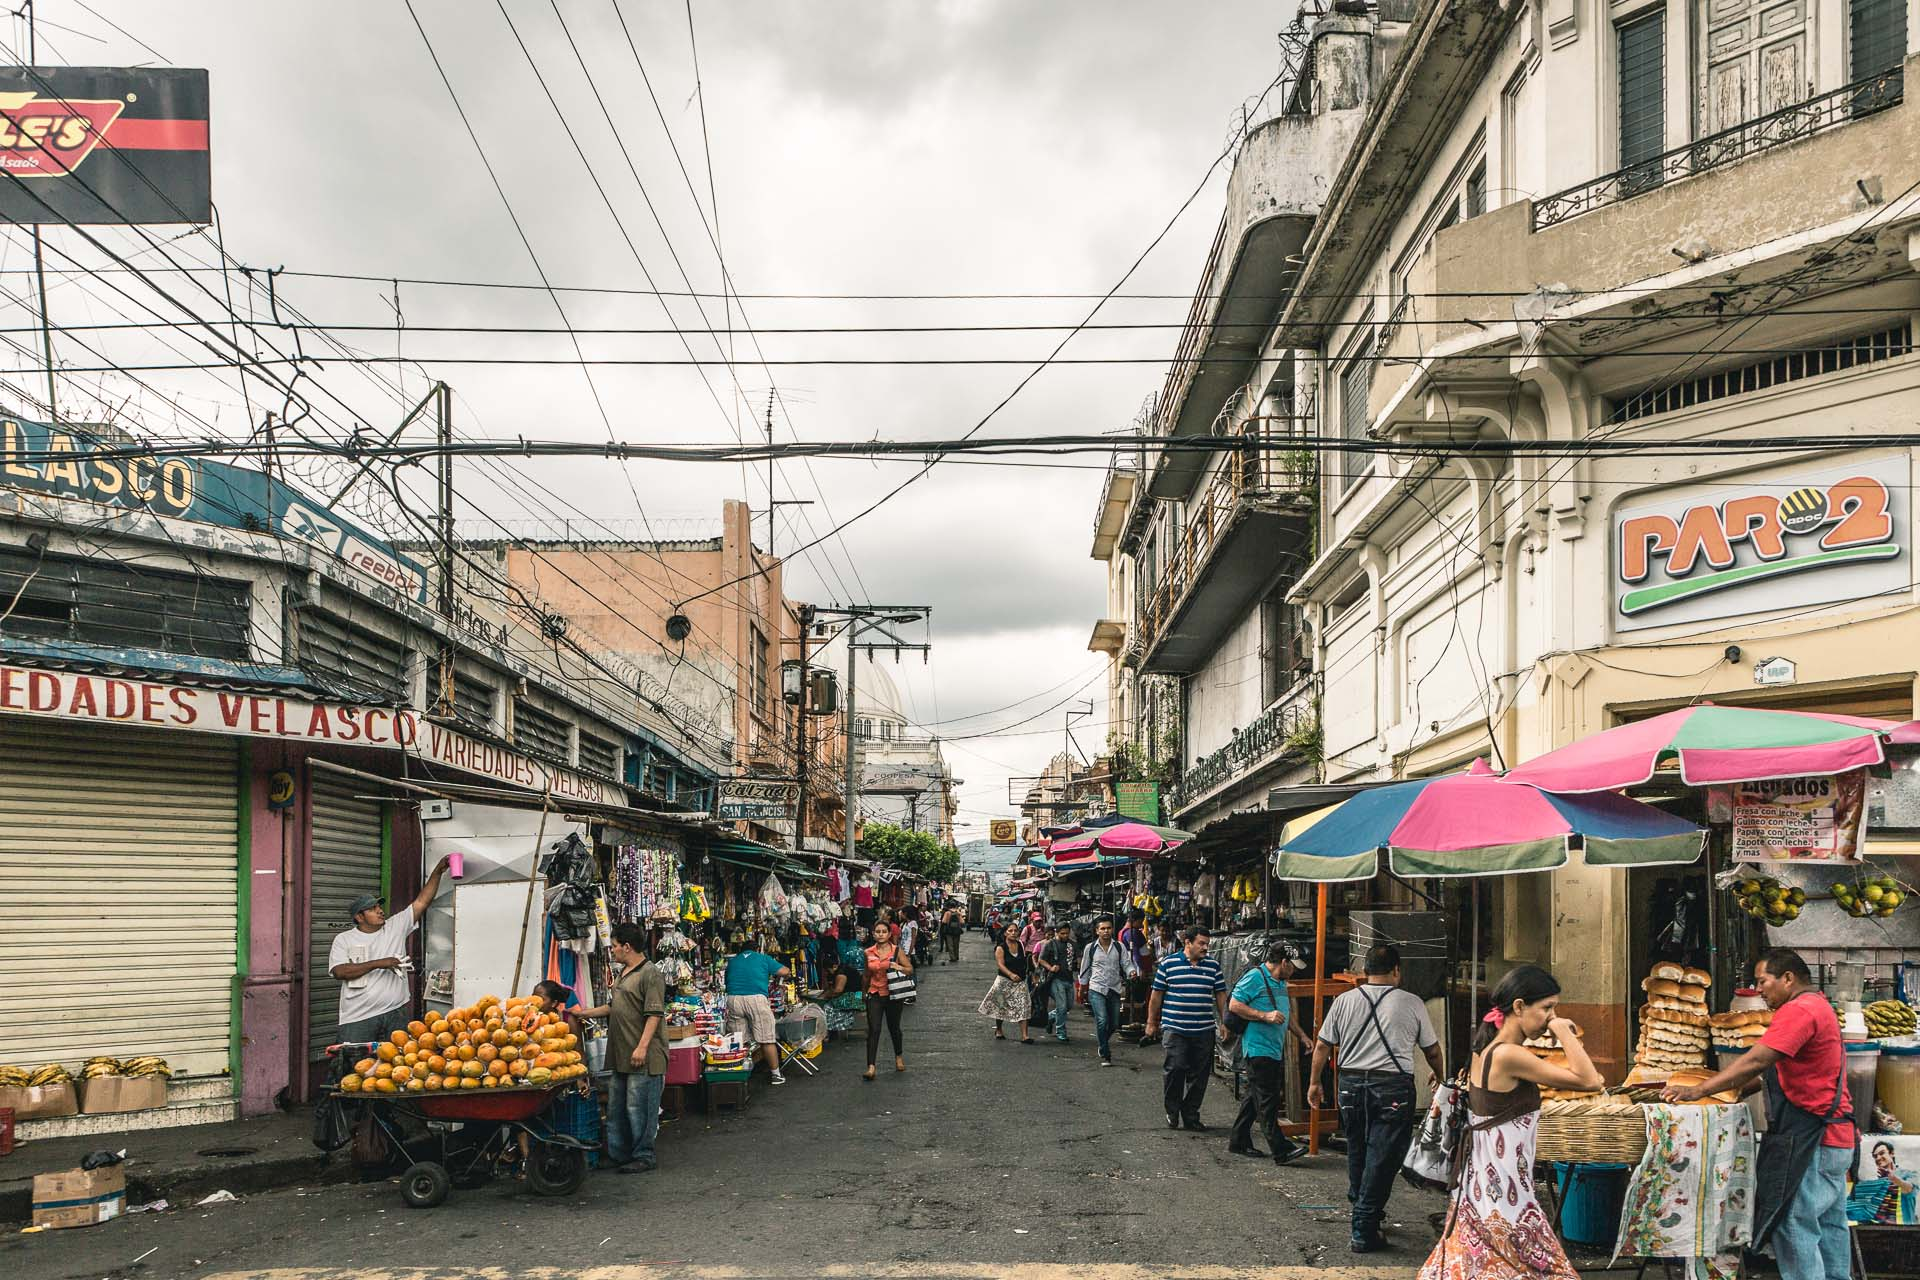 Street after street filled with markets.